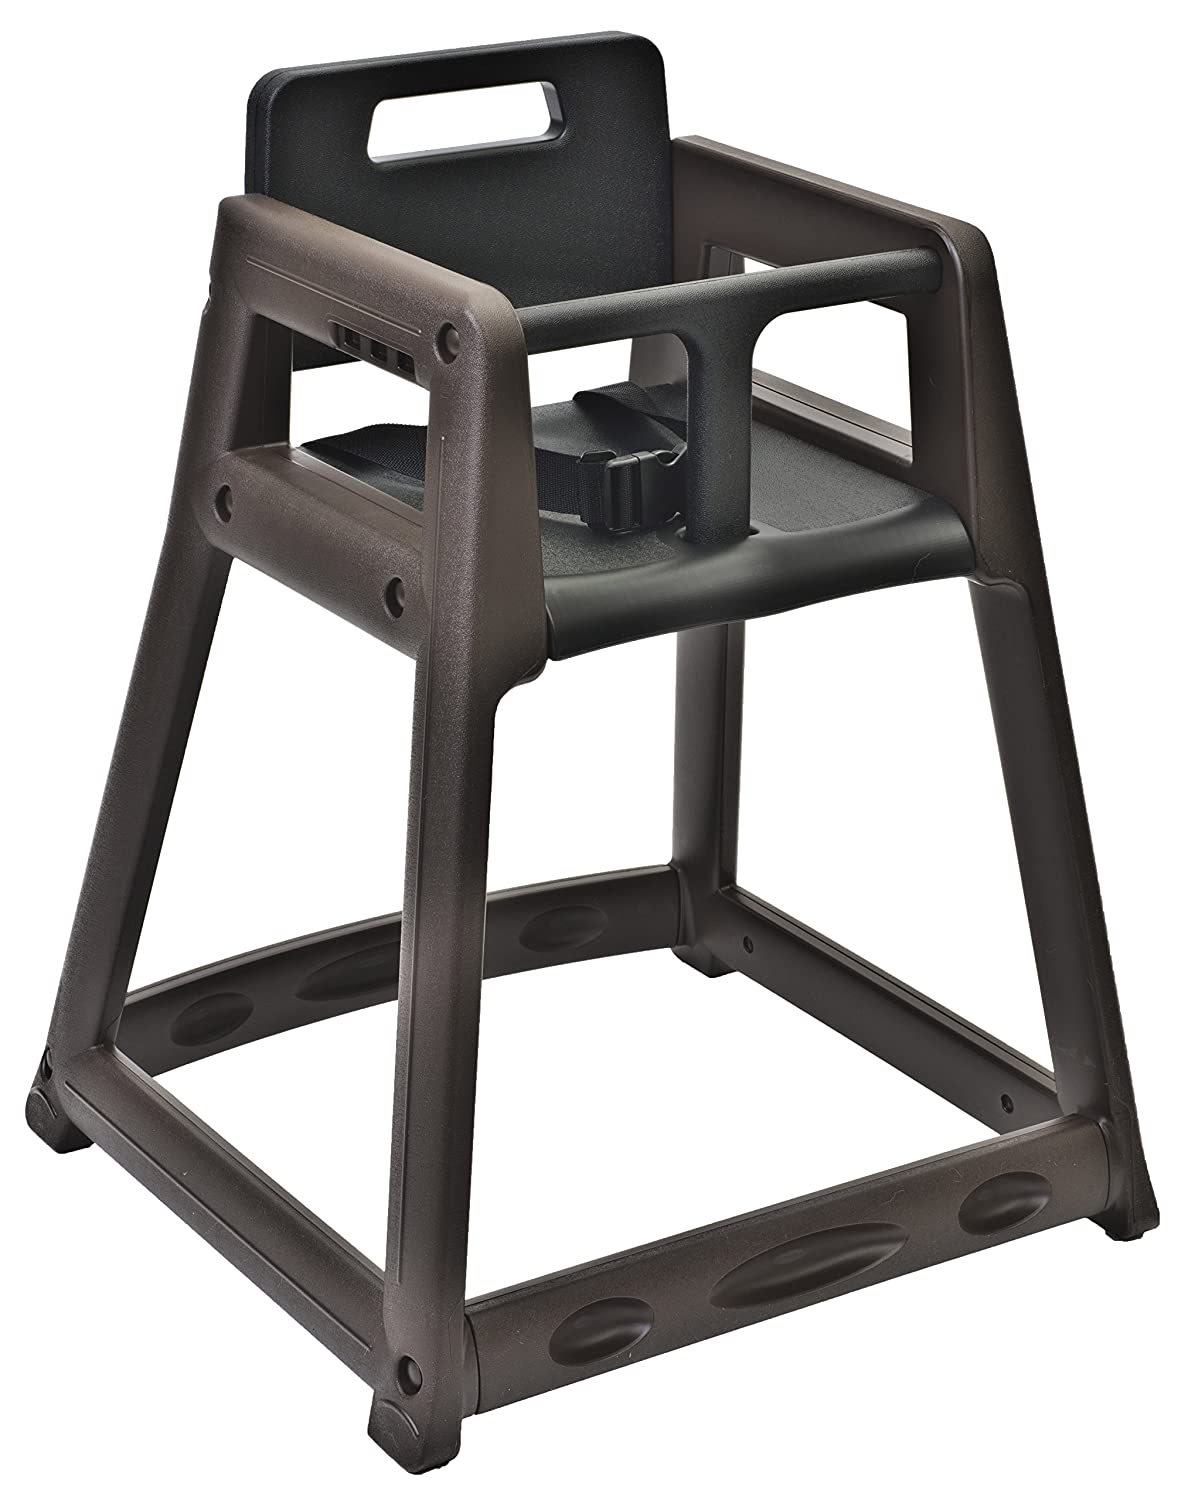 Koala Kare KB850 09 Diner Plastic High Chair Brown 23 Height 23 Width 30 Length